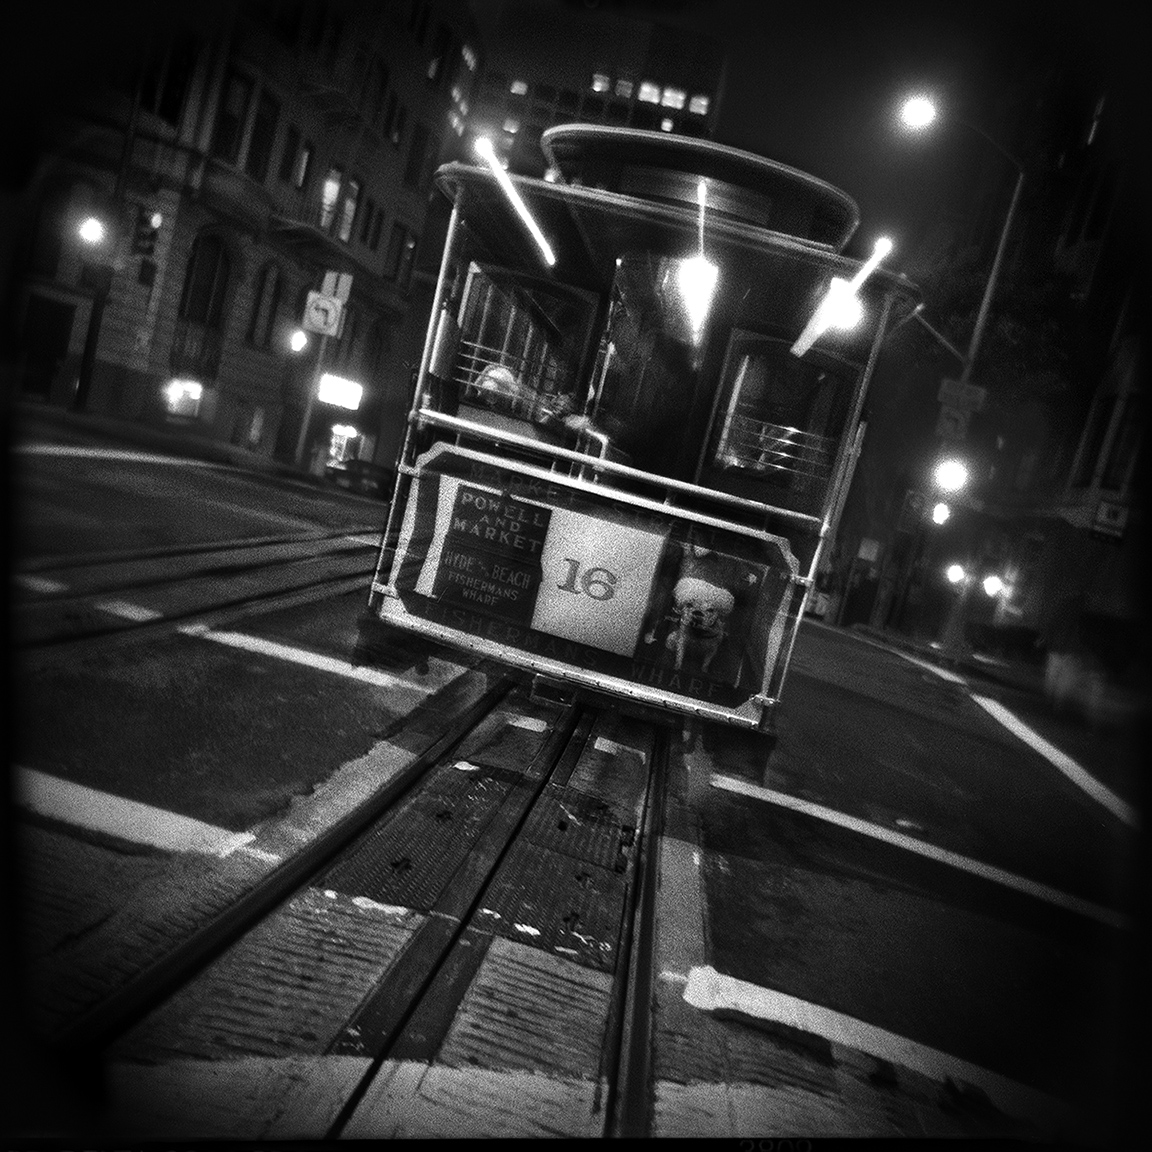 06-SF-HOLGA-WEBSITE-060314